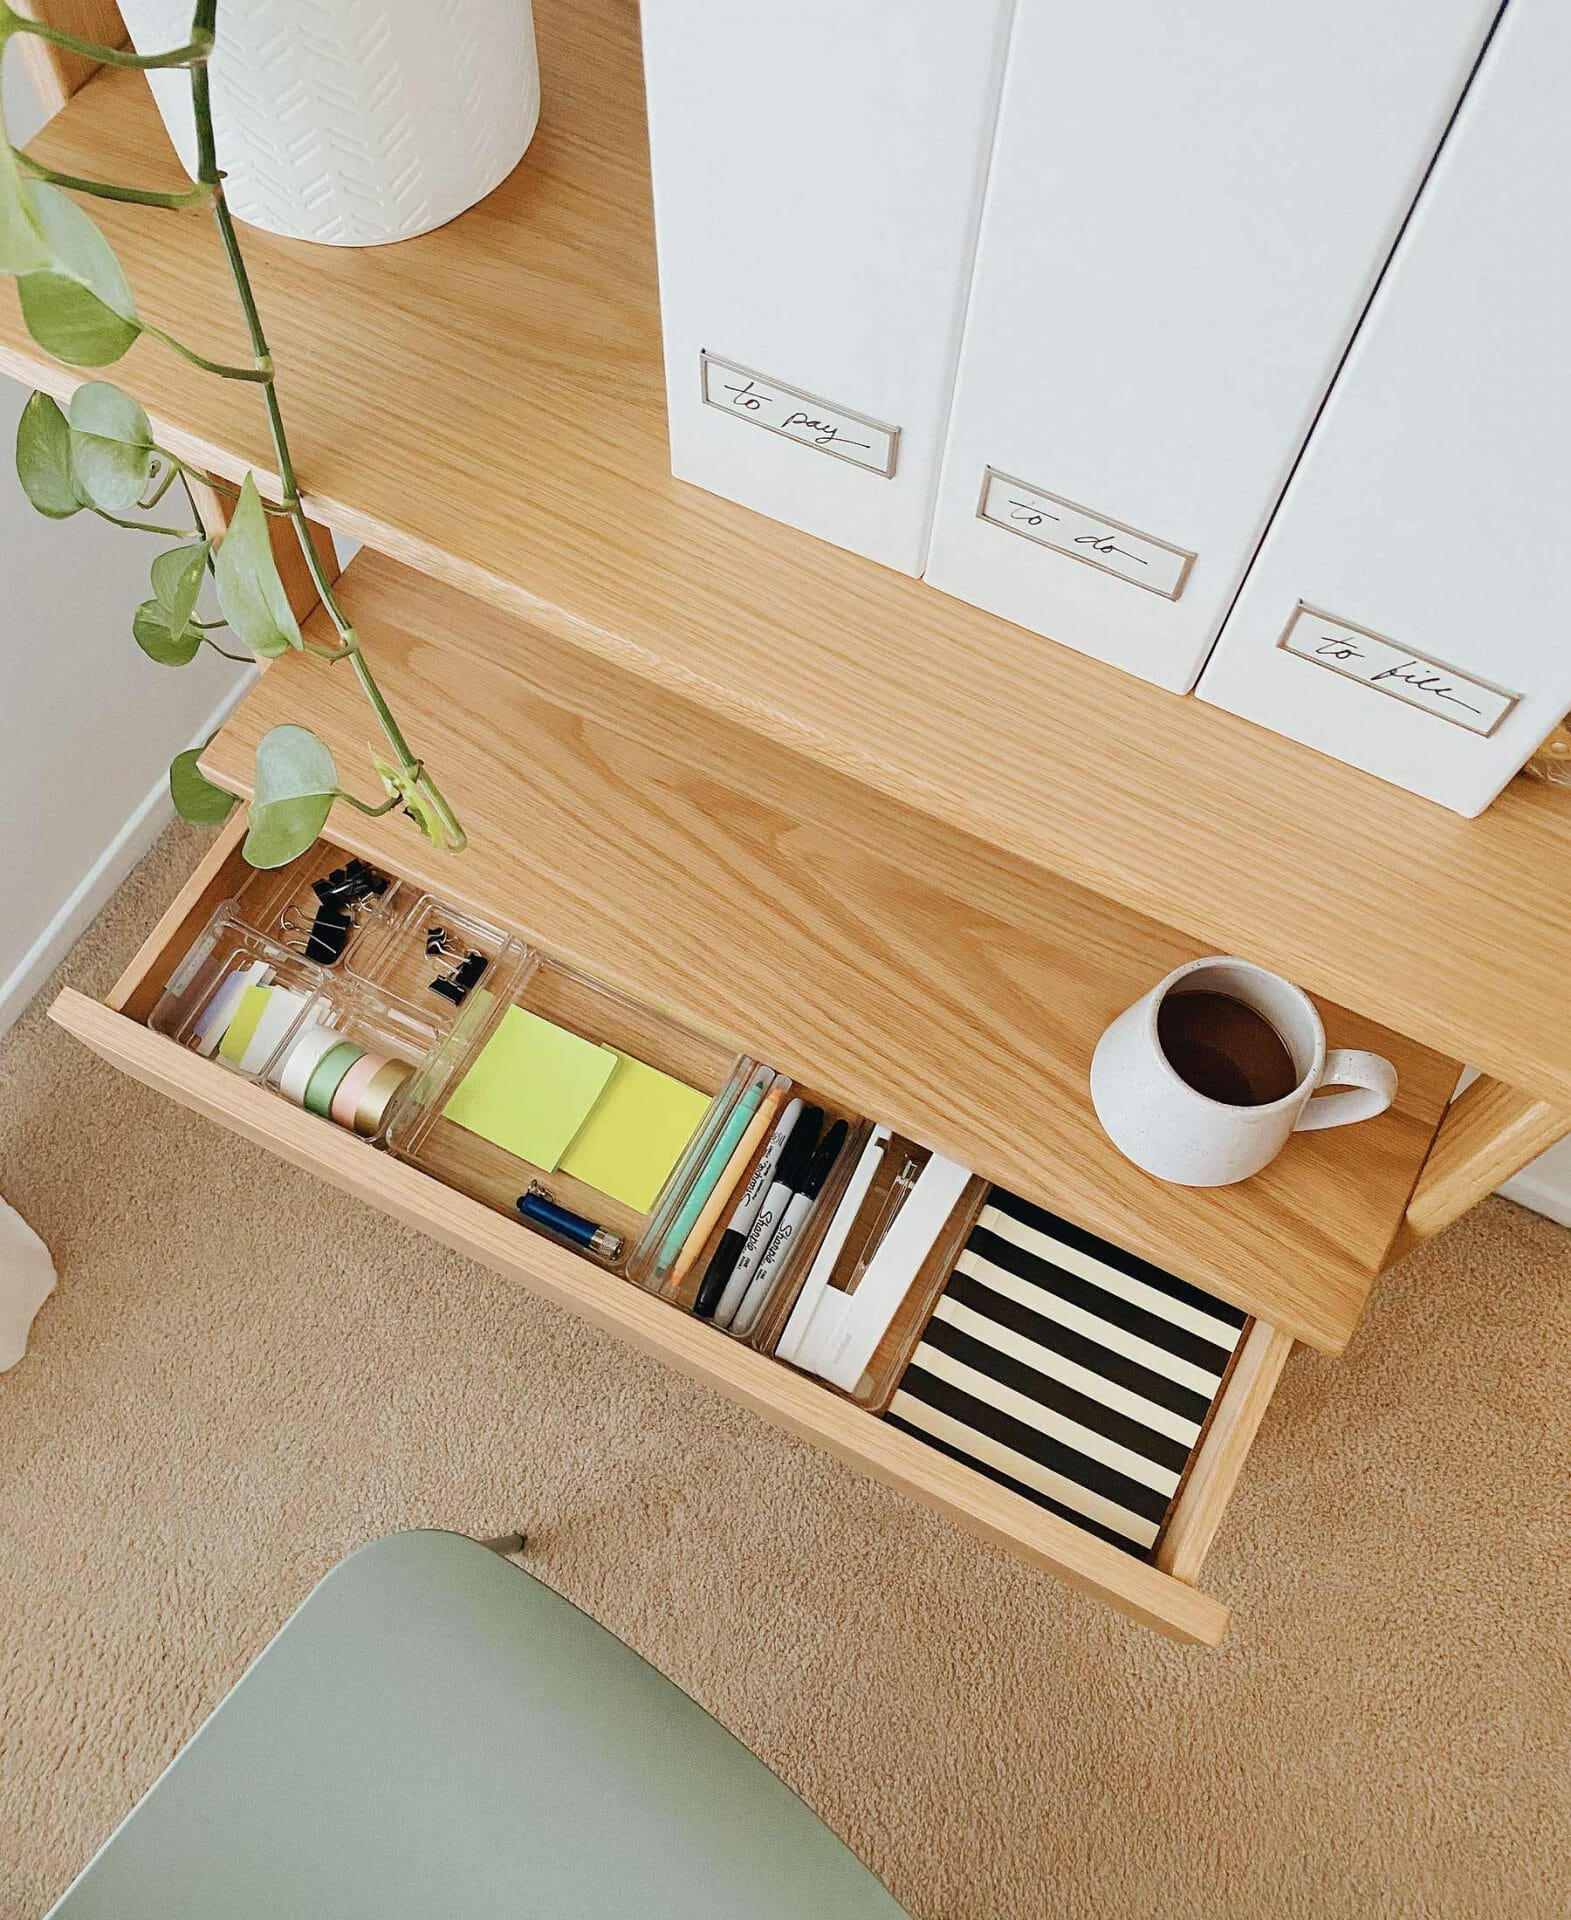 Monica Leed's Lignum shelf desk drawer is perfectly organized and clutter free.